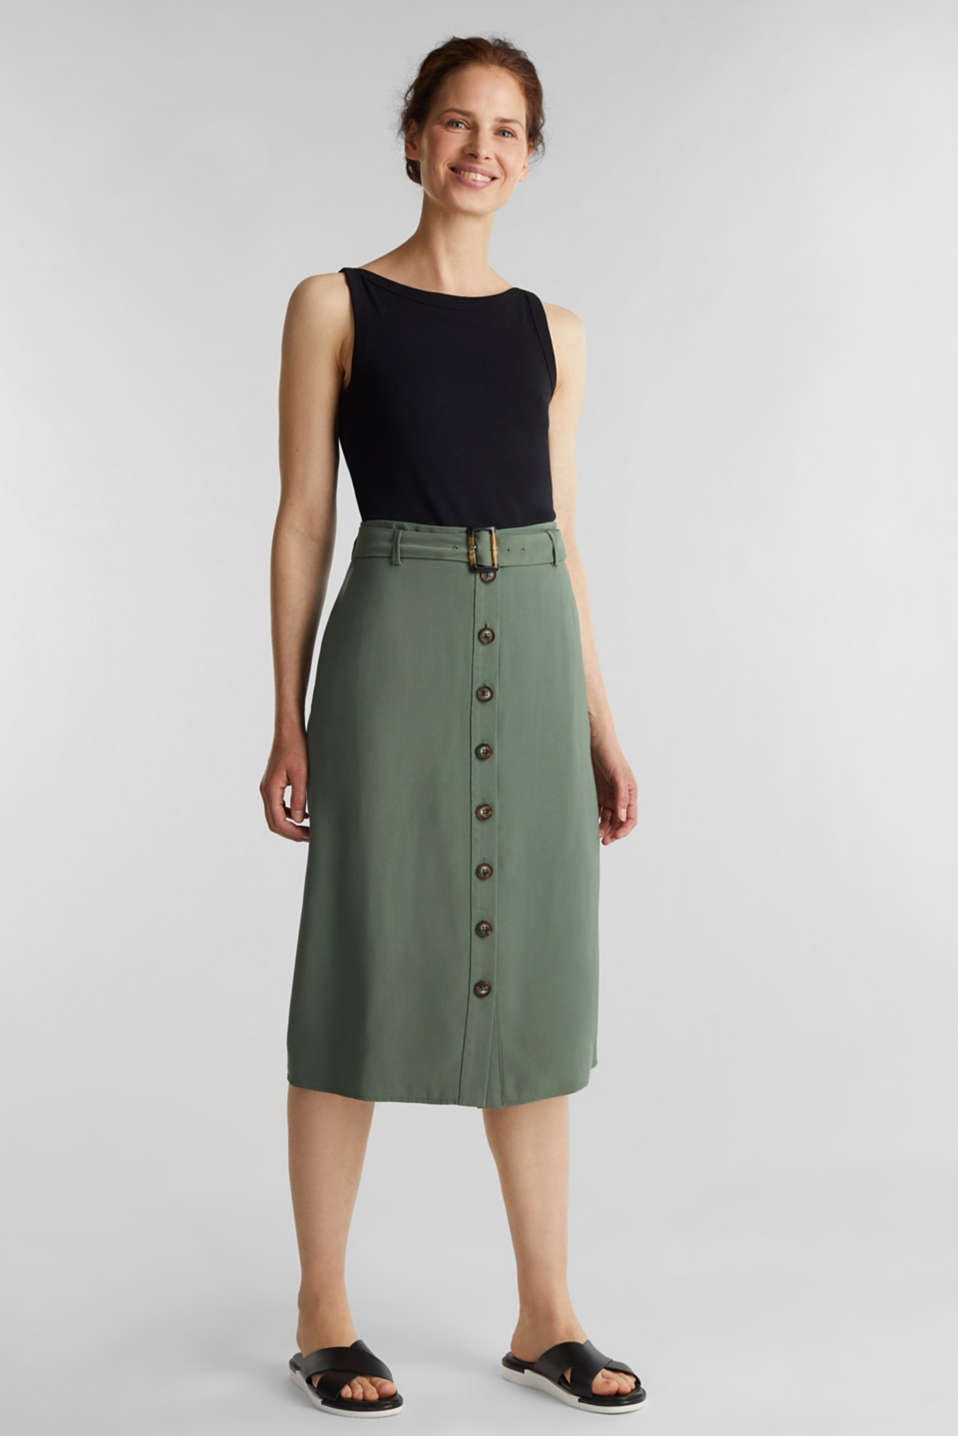 Midi skirt with a belt and a button placket, KHAKI GREEN, detail image number 0